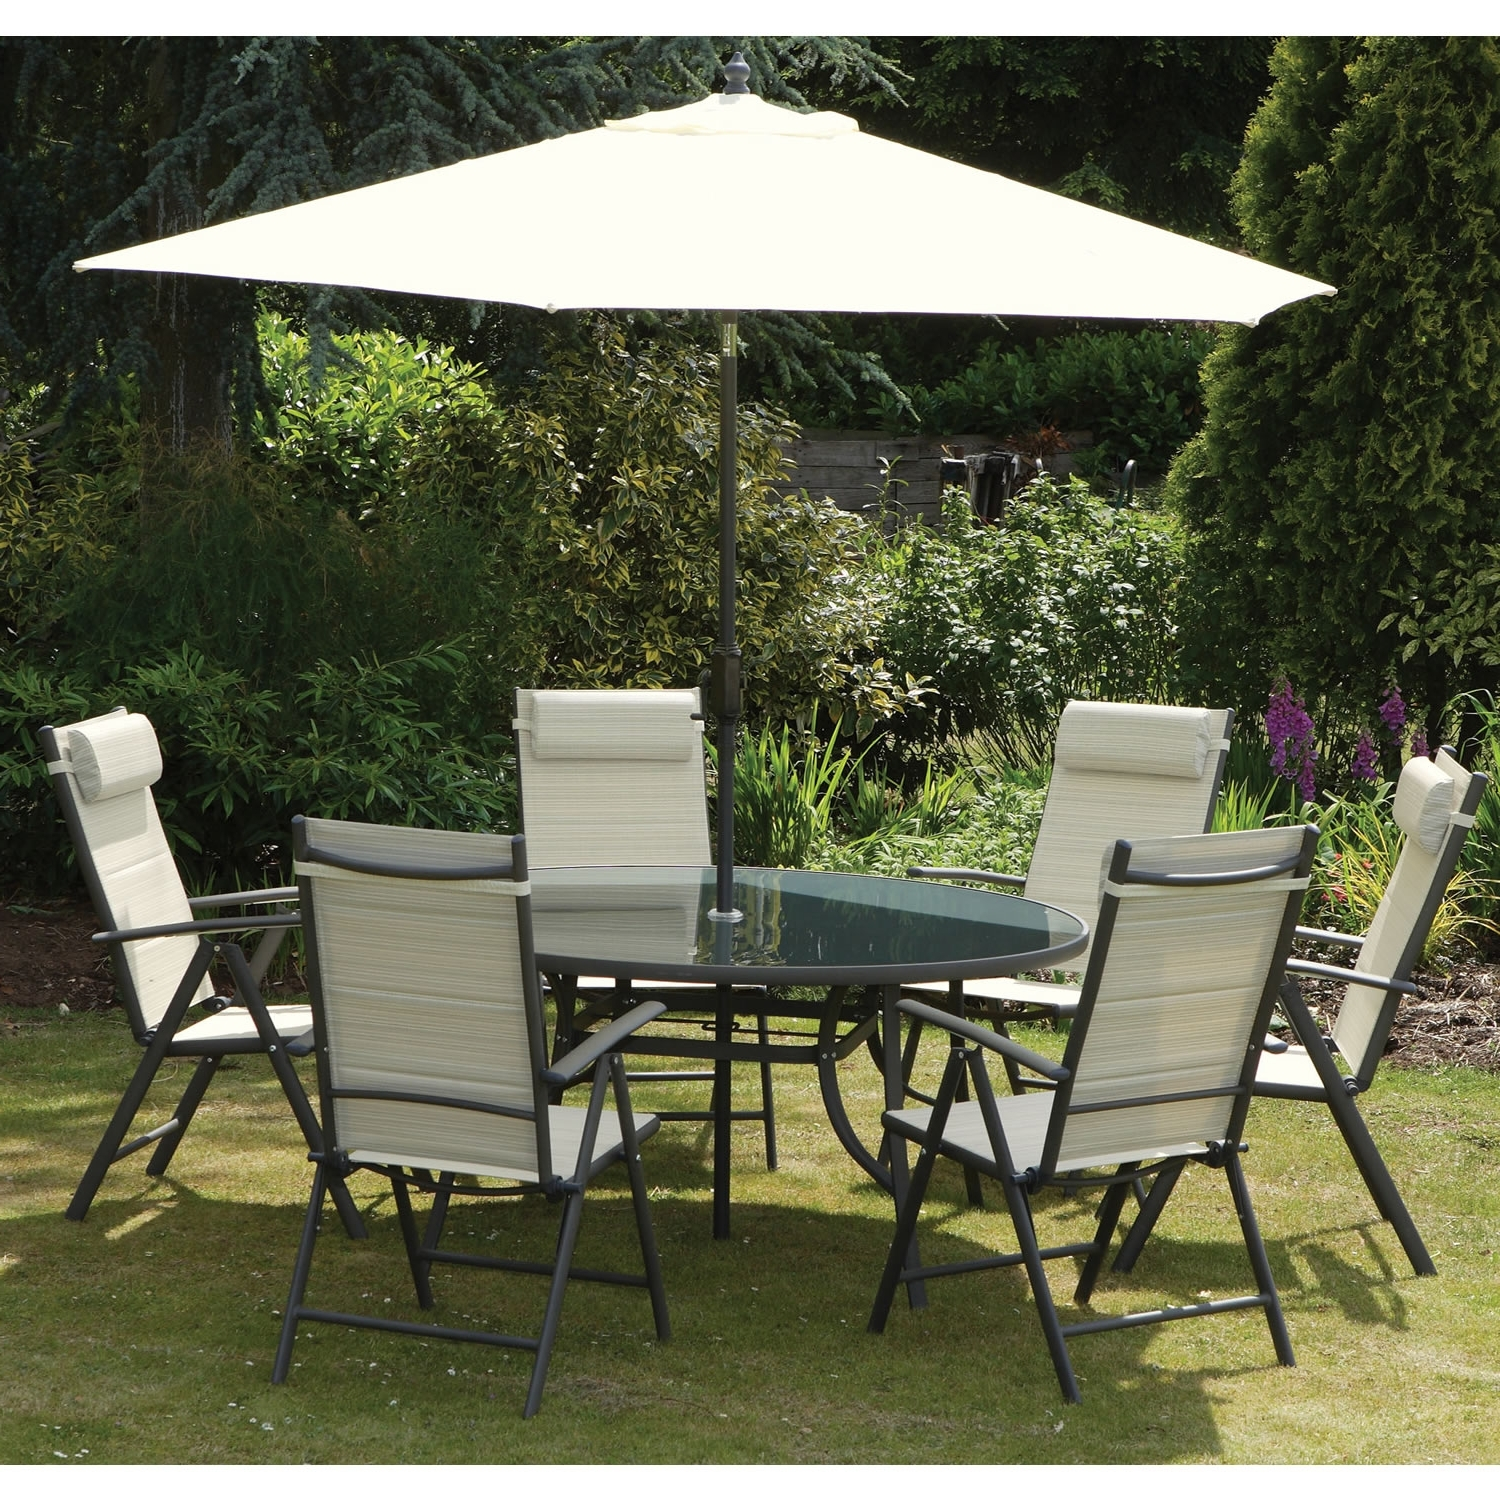 Recent Plastic Patio Furniture Sets Roselawnlutheran Intended For Patio Table And Chairs With Umbrellas (Gallery 7 of 20)